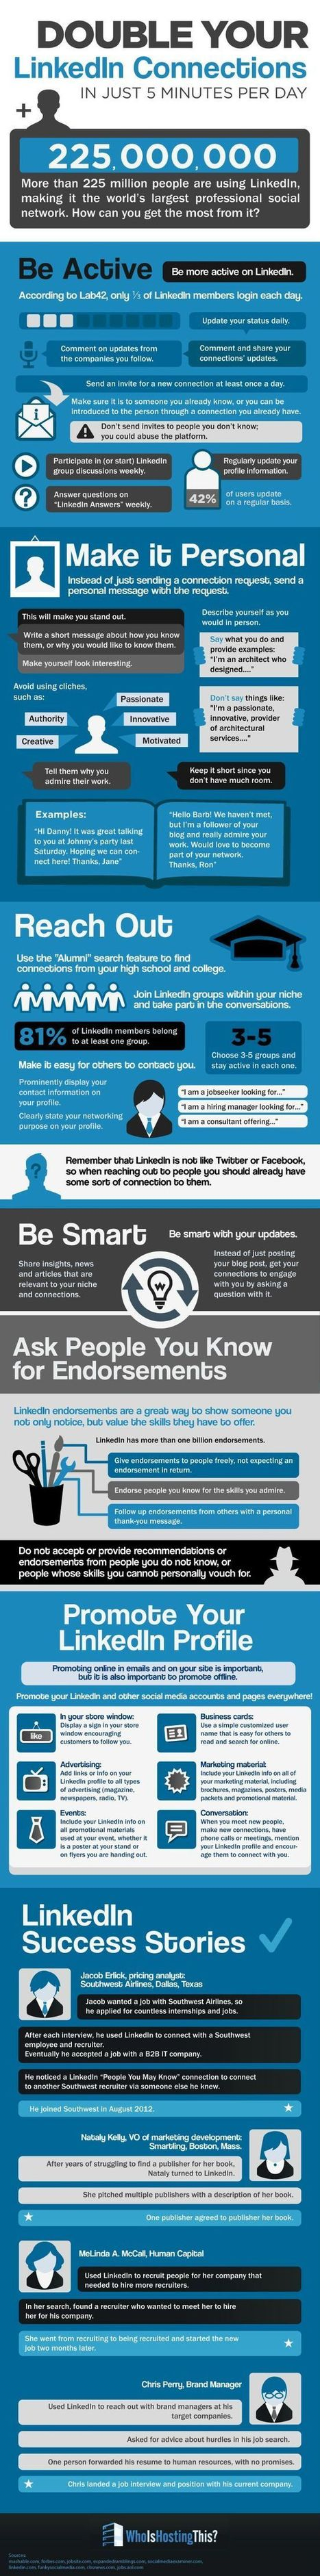 10 Simple Tips to Double your LinkedIn Connections | Jeff Bullas | Public Relations & Social Media Insight | Scoop.it